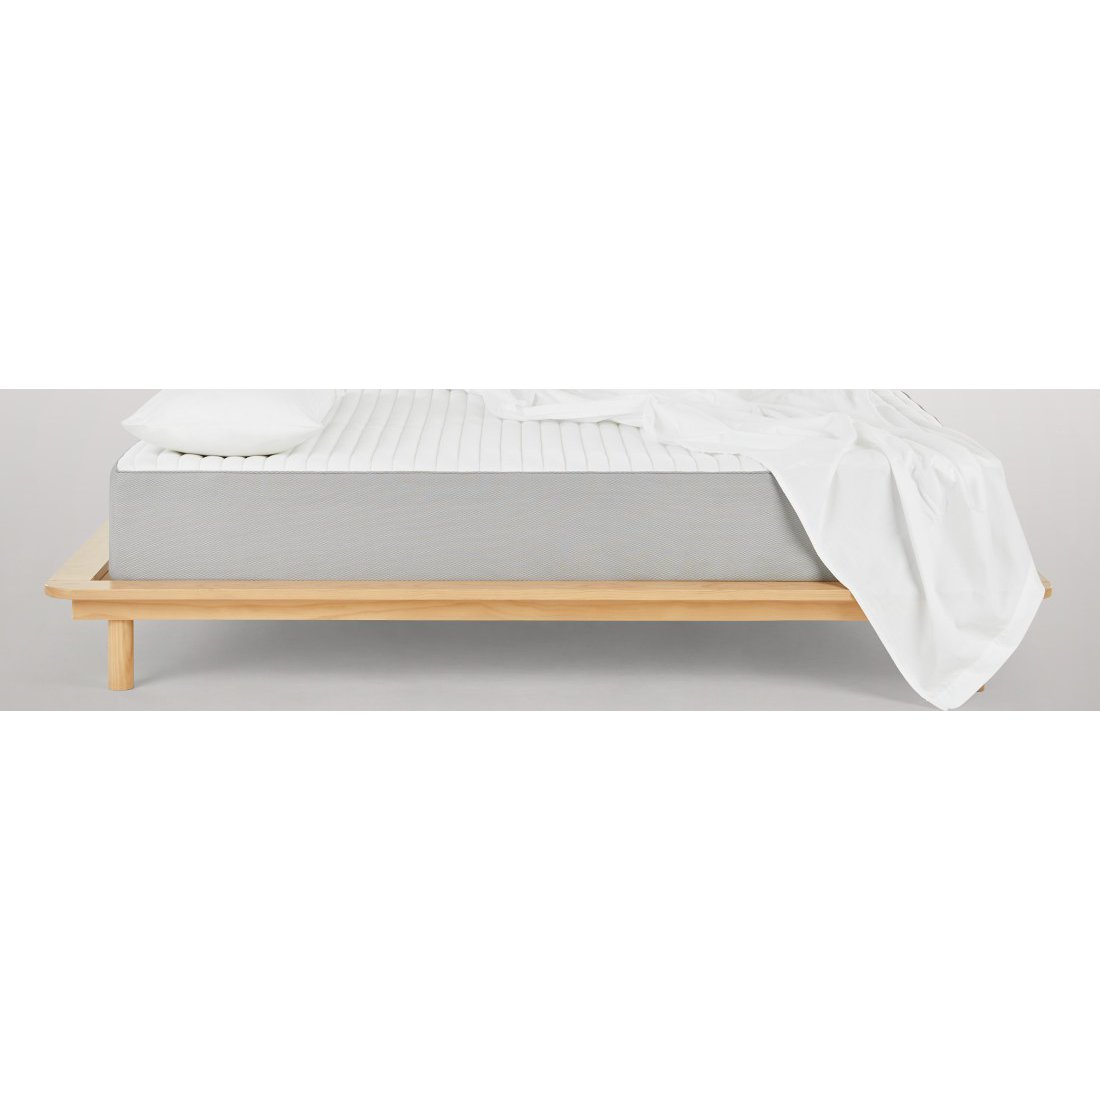 image-The Natural One, Mattress, Single